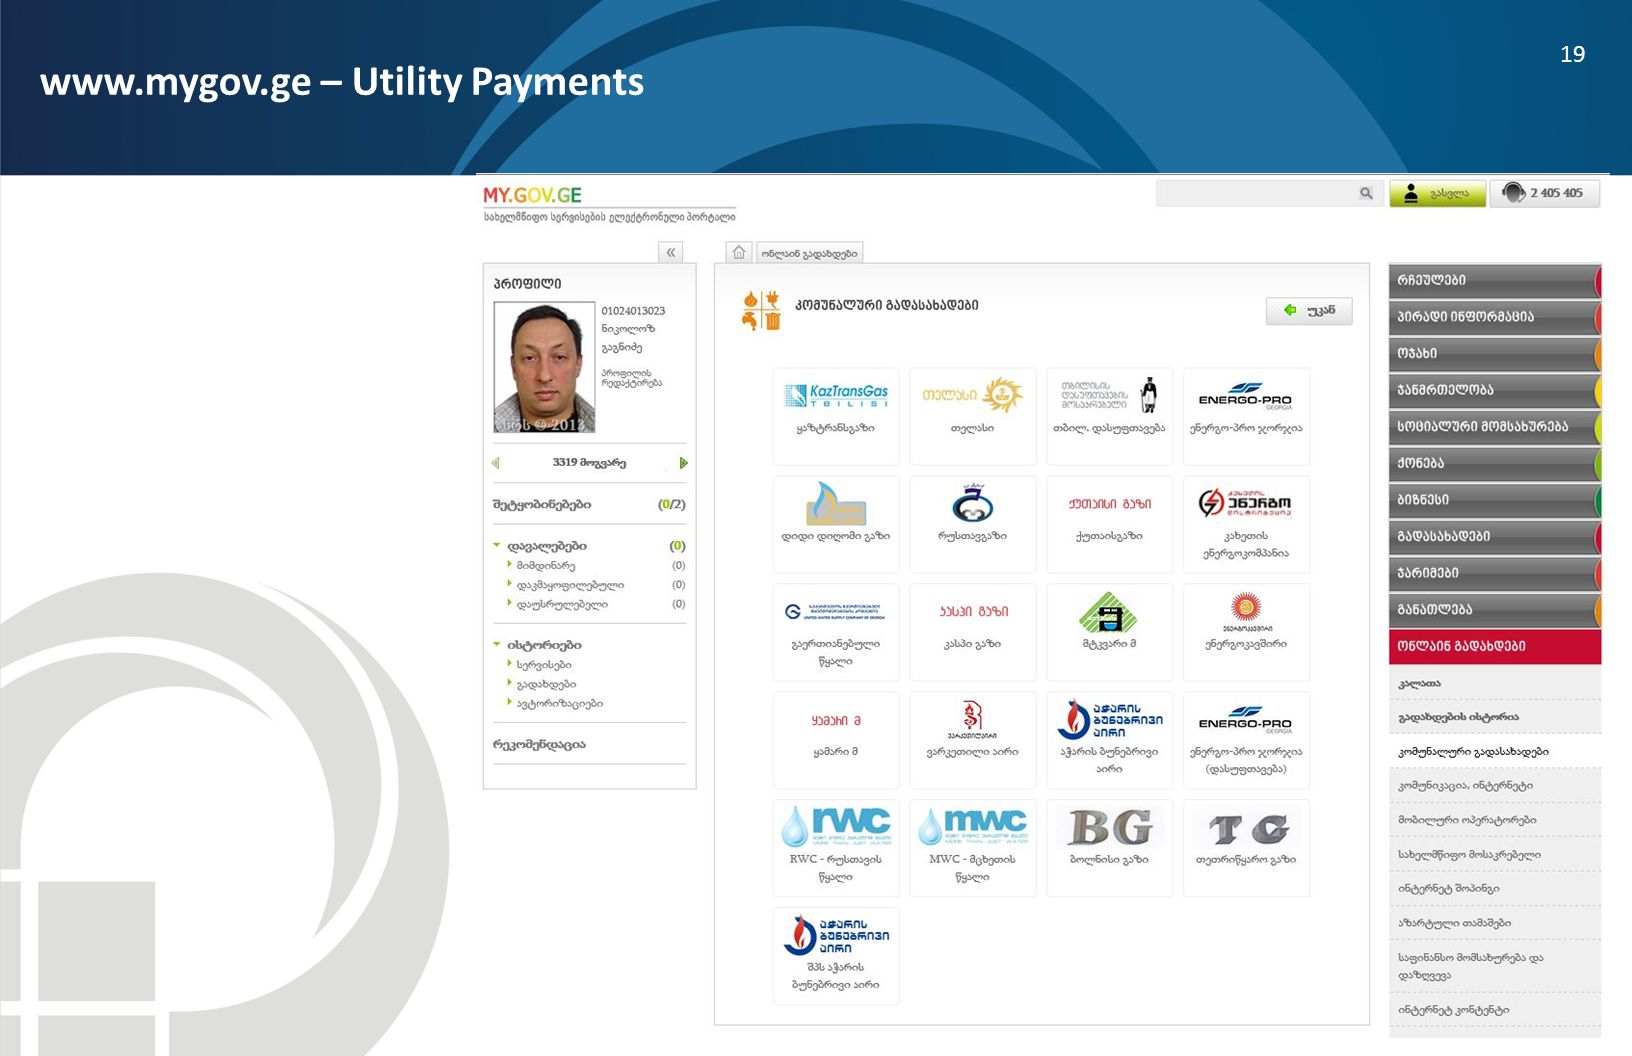 www.mygov.ge – Utility Payments